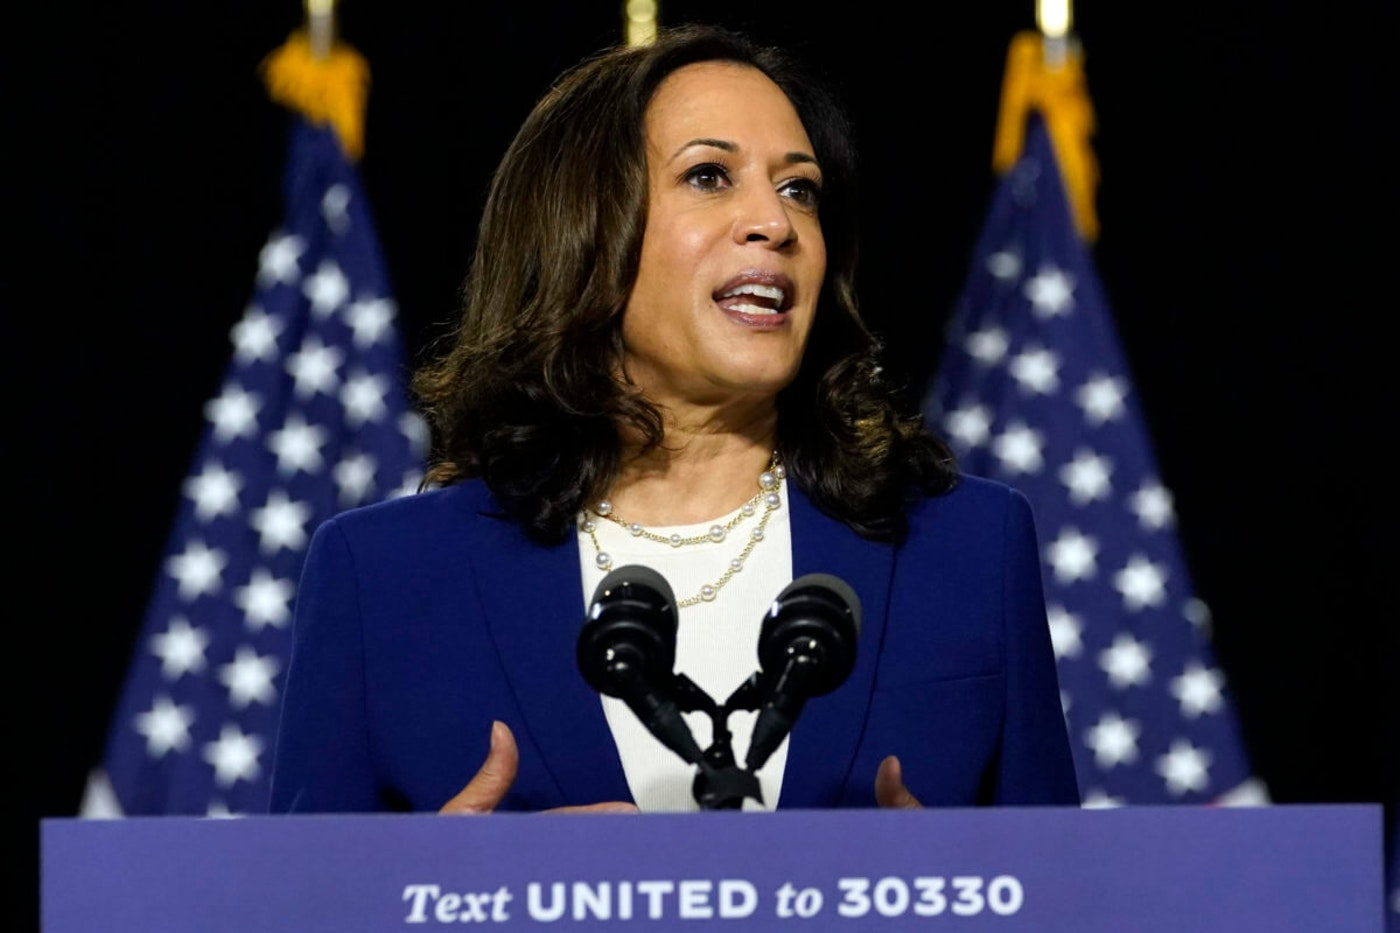 Sen. Kamala Harris, D-Calif., speaks after Democratic presidential candidate former Vice President Joe Biden introduced her as his running mate during a campaign event at Alexis Dupont High School in Wilmington, DE. (AP Photo/Carolyn Kaster)